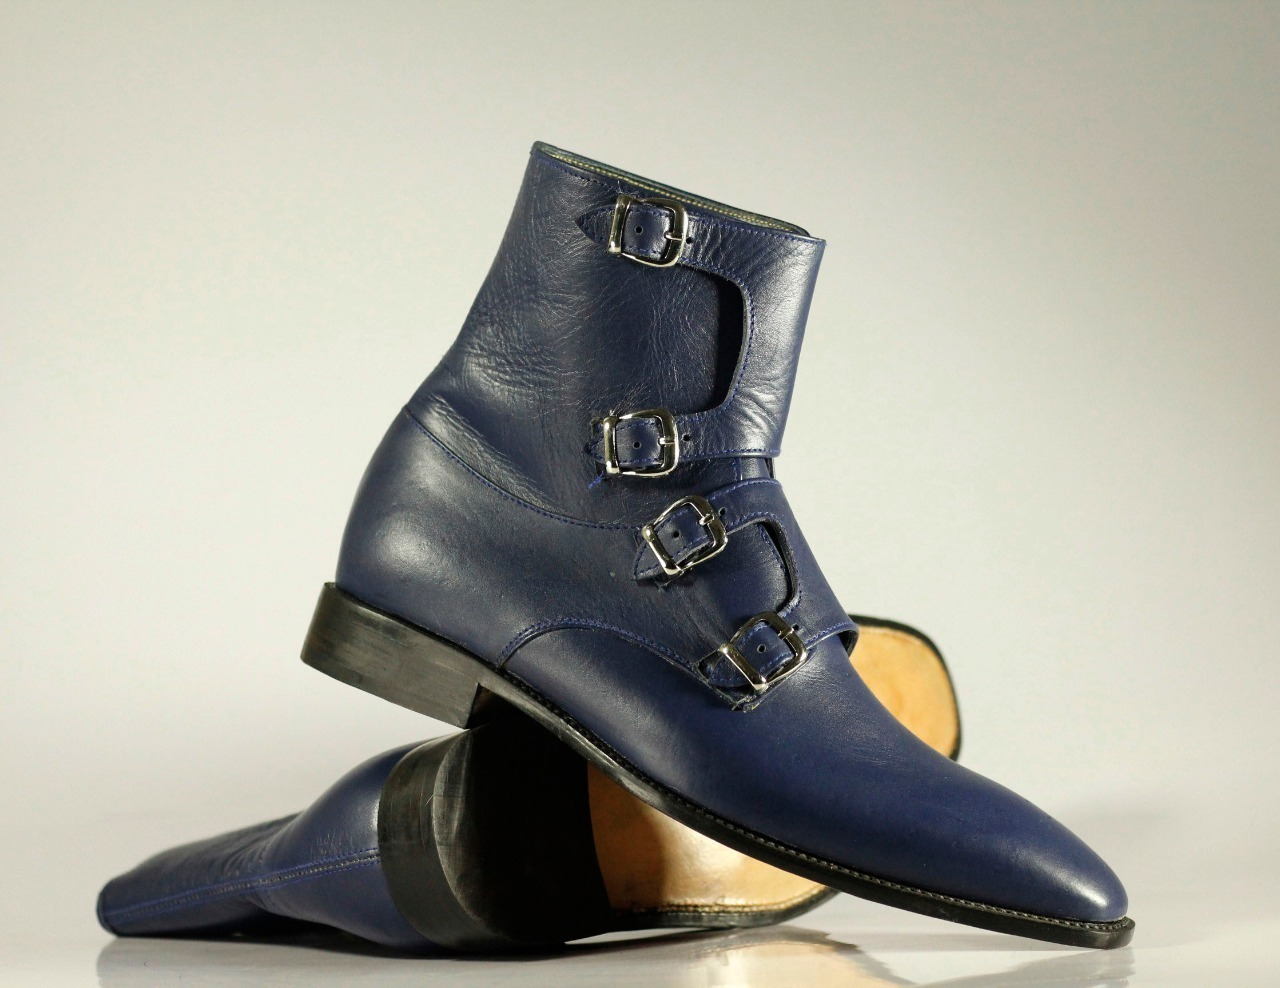 Handmade Men's Blue Leather High Ankle Monkstrap Boots